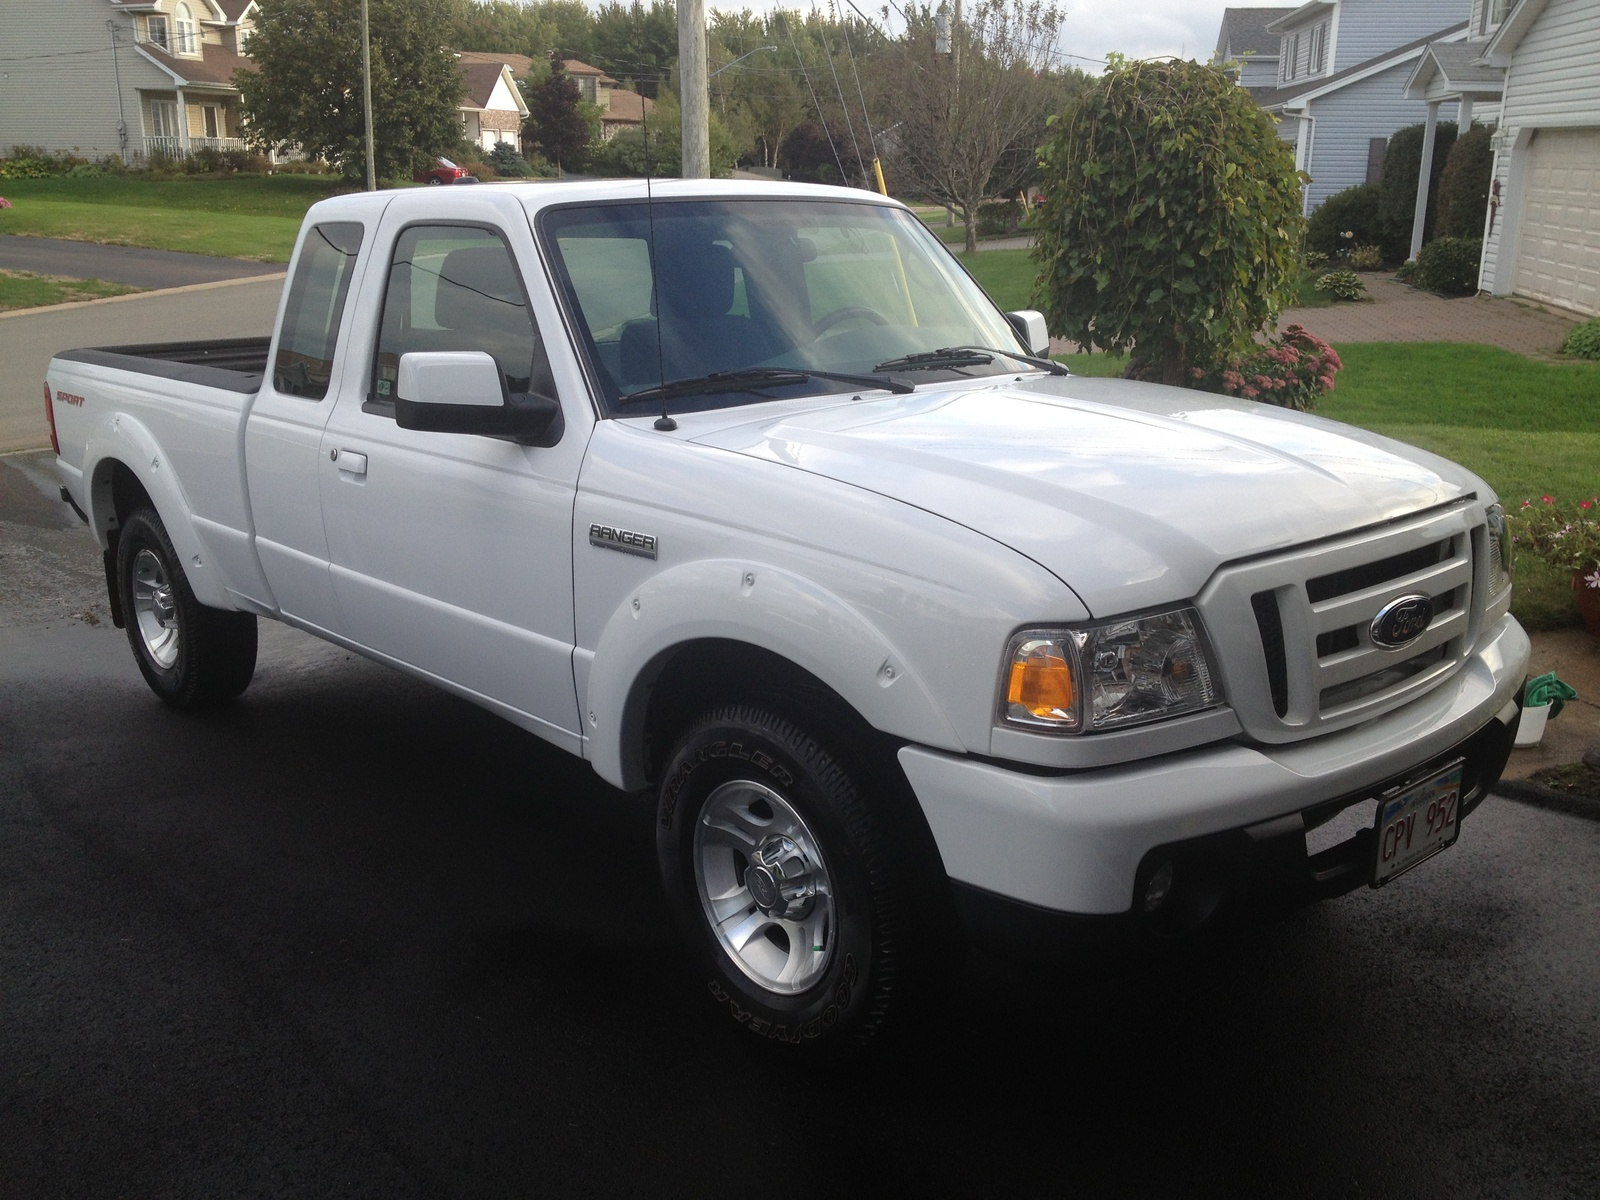 Ford Ranger Sport Supercab Door Pic